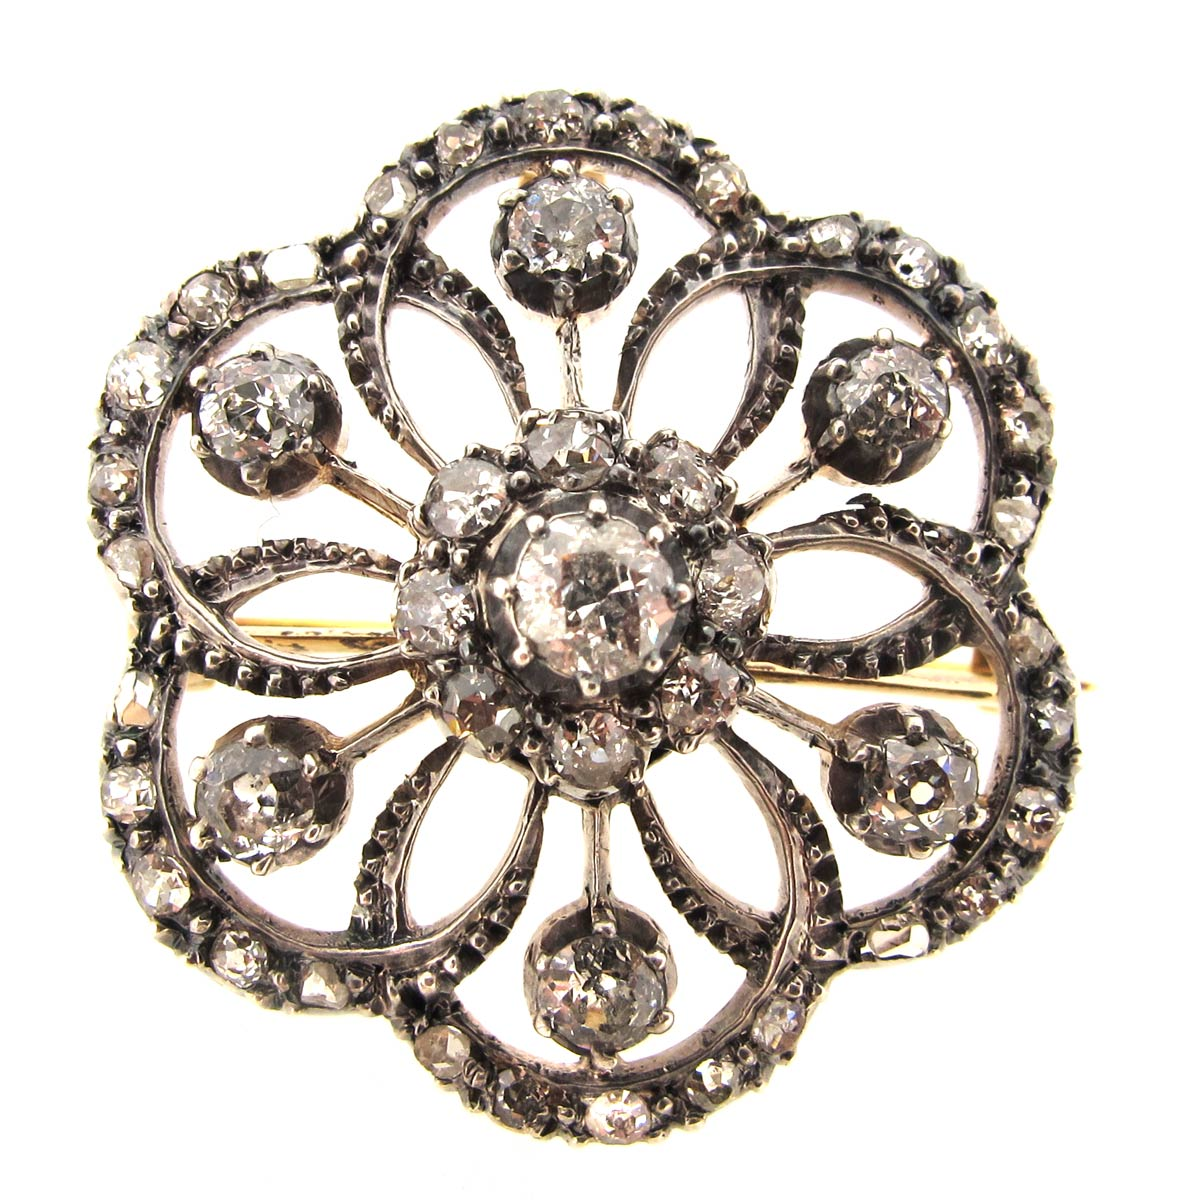 Antique Diamond Brooch/ Pendant